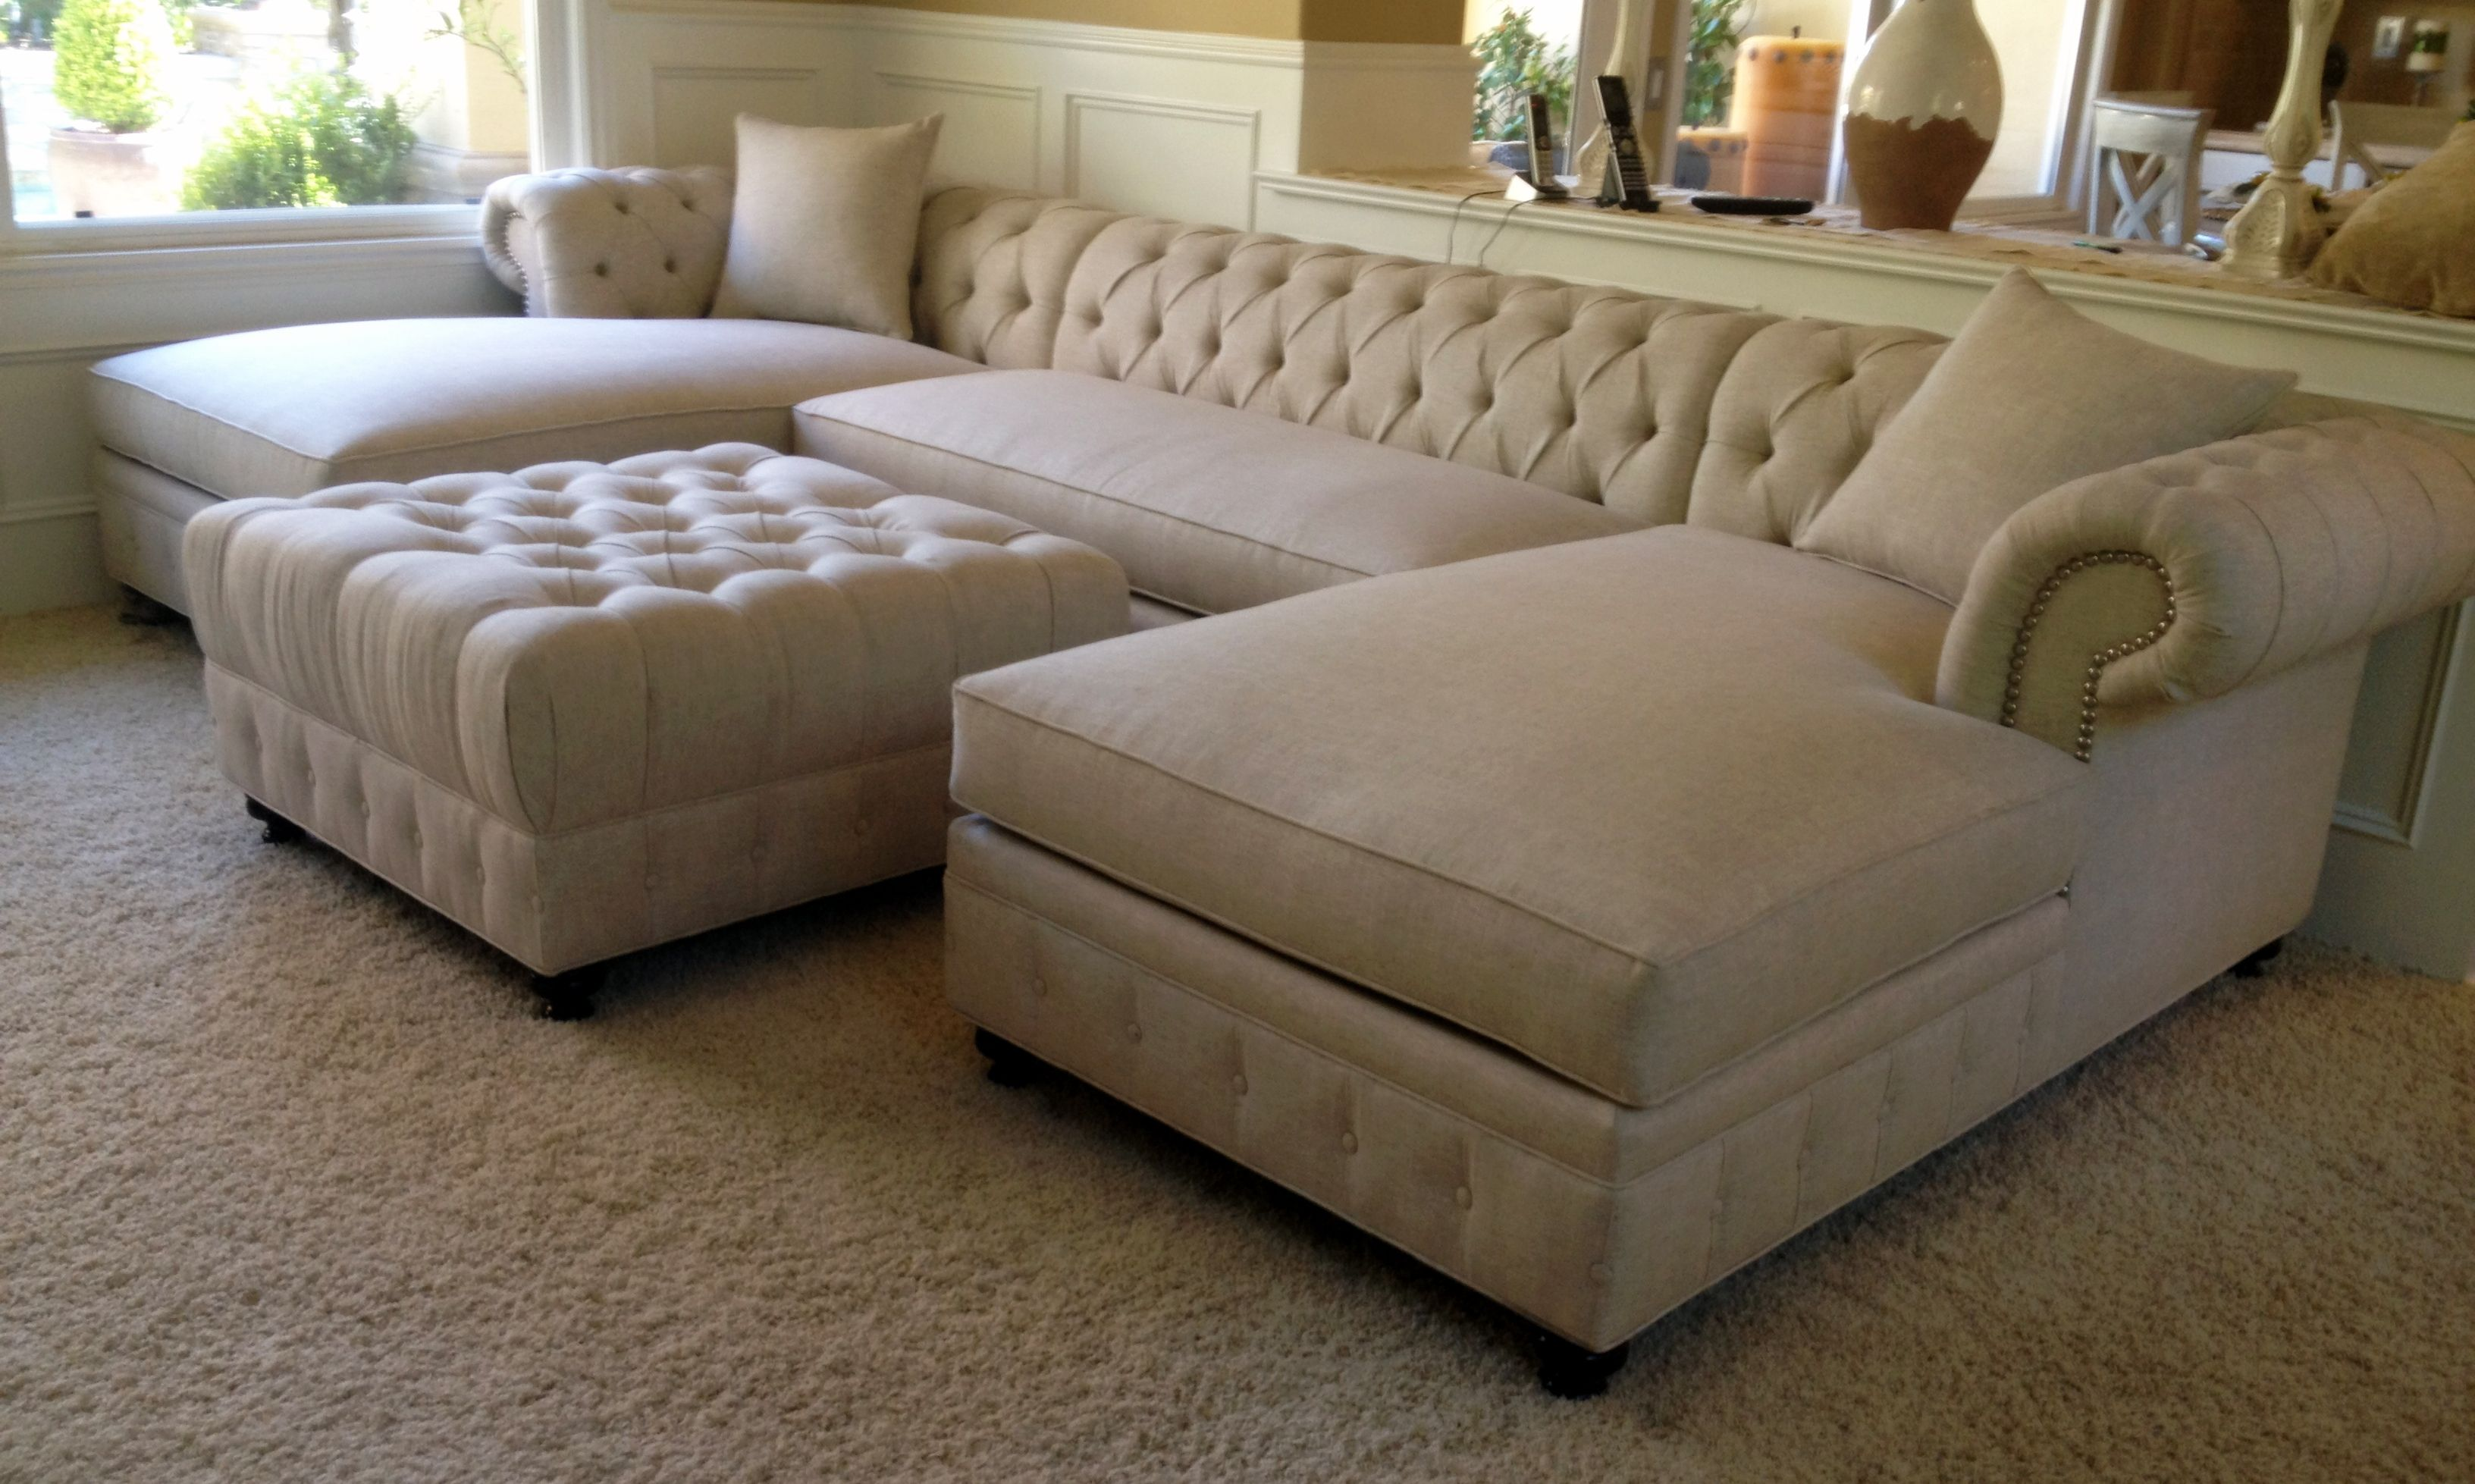 Chesterfield Showroom Kenzie Style Custom Chesterfield Sofa Or Sectional